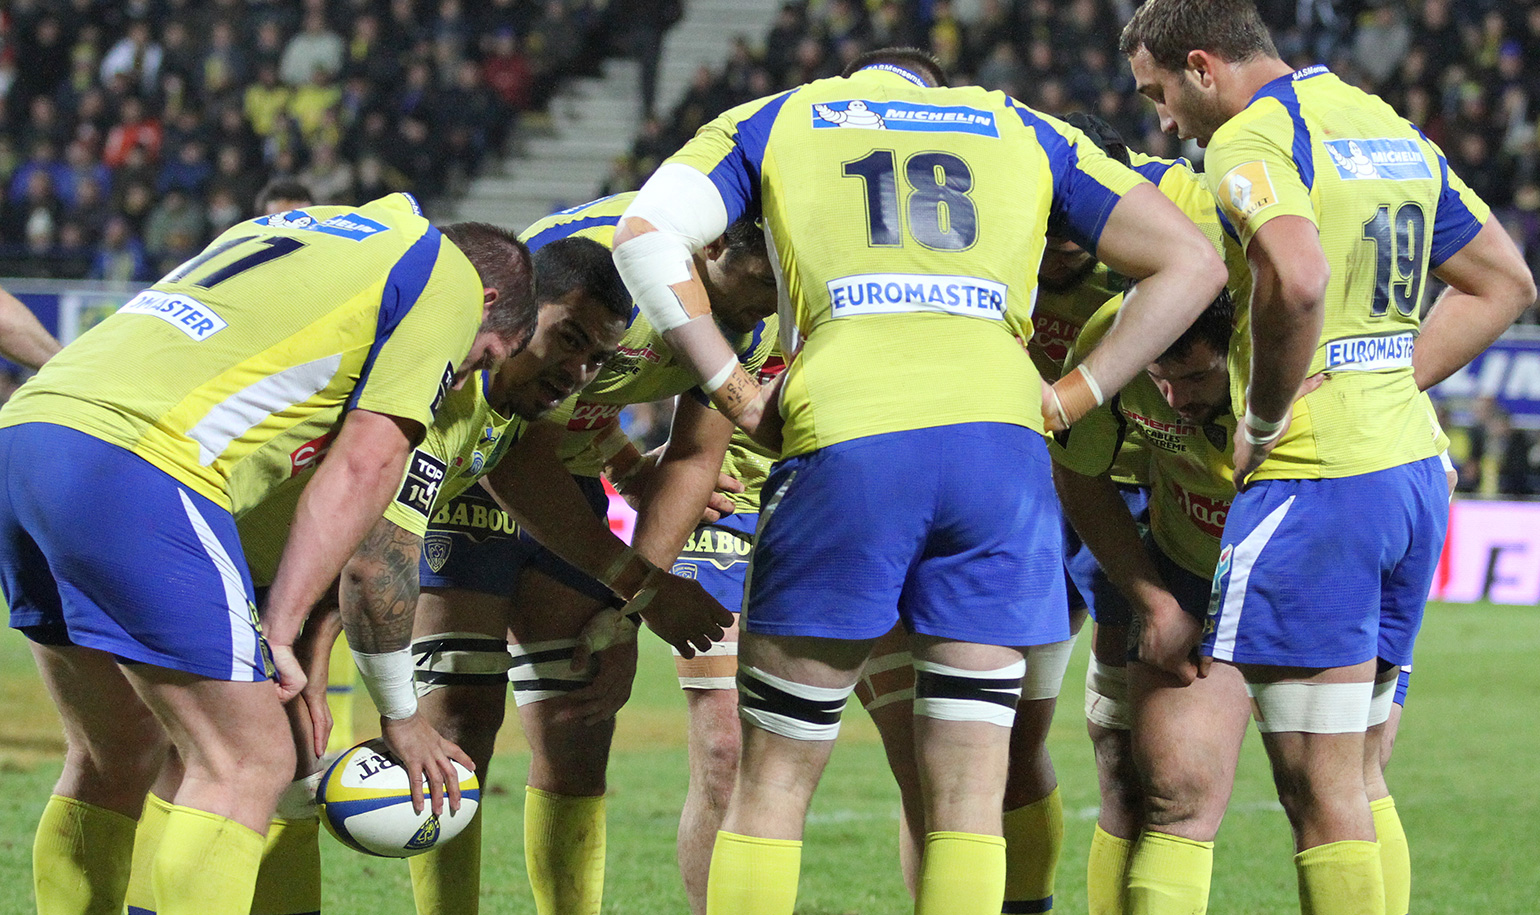 clermont devra faire avec 13 joueurs en moins asm rugby. Black Bedroom Furniture Sets. Home Design Ideas